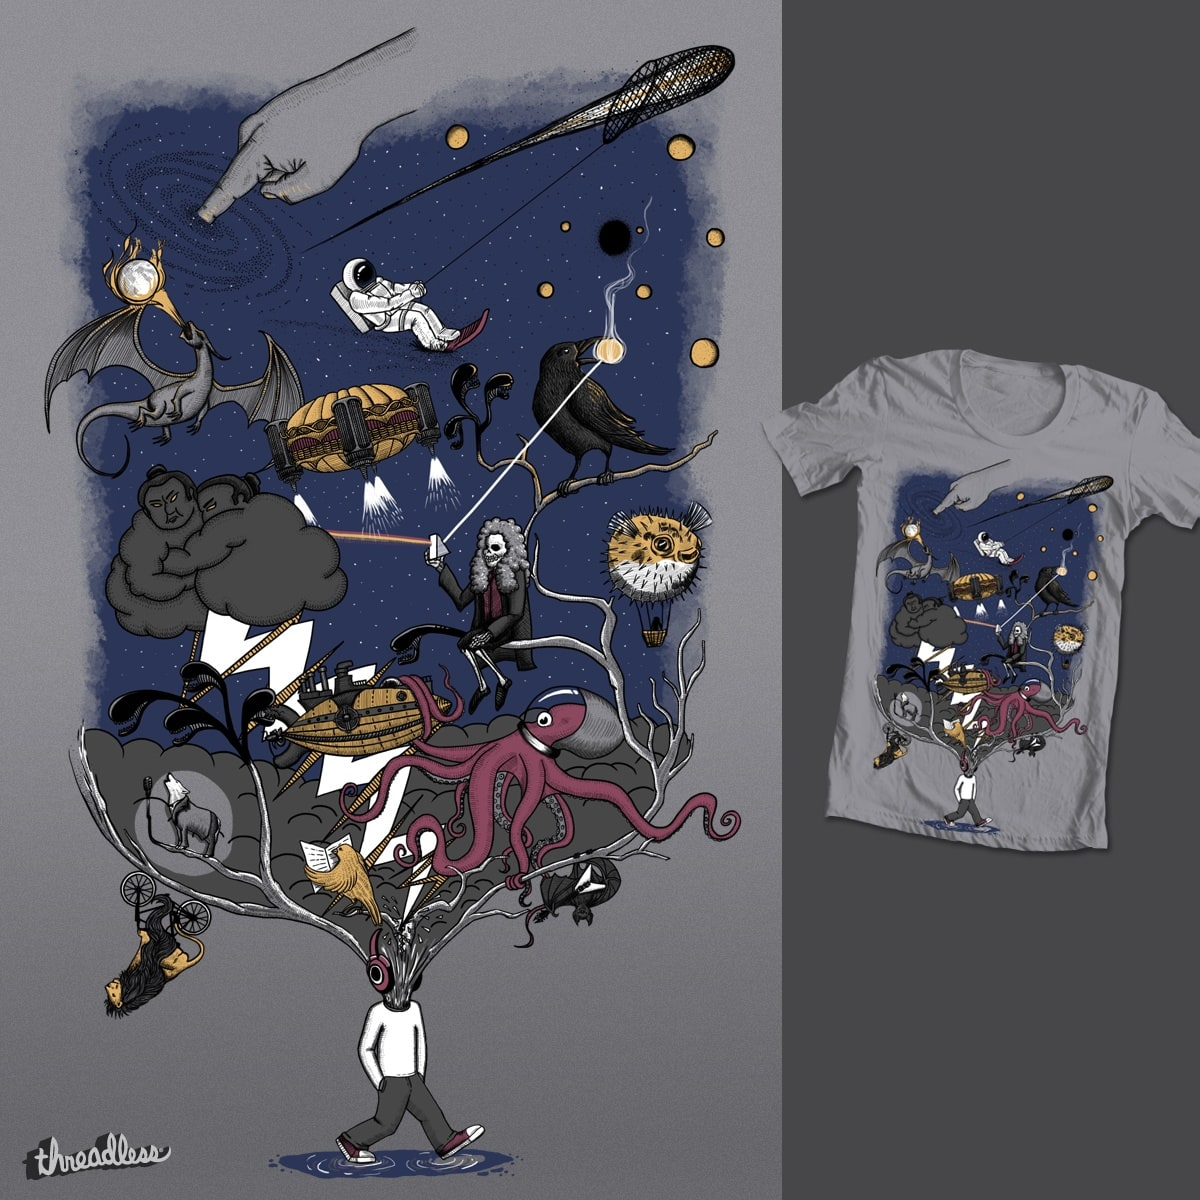 The music and my world by sachpica on Threadless